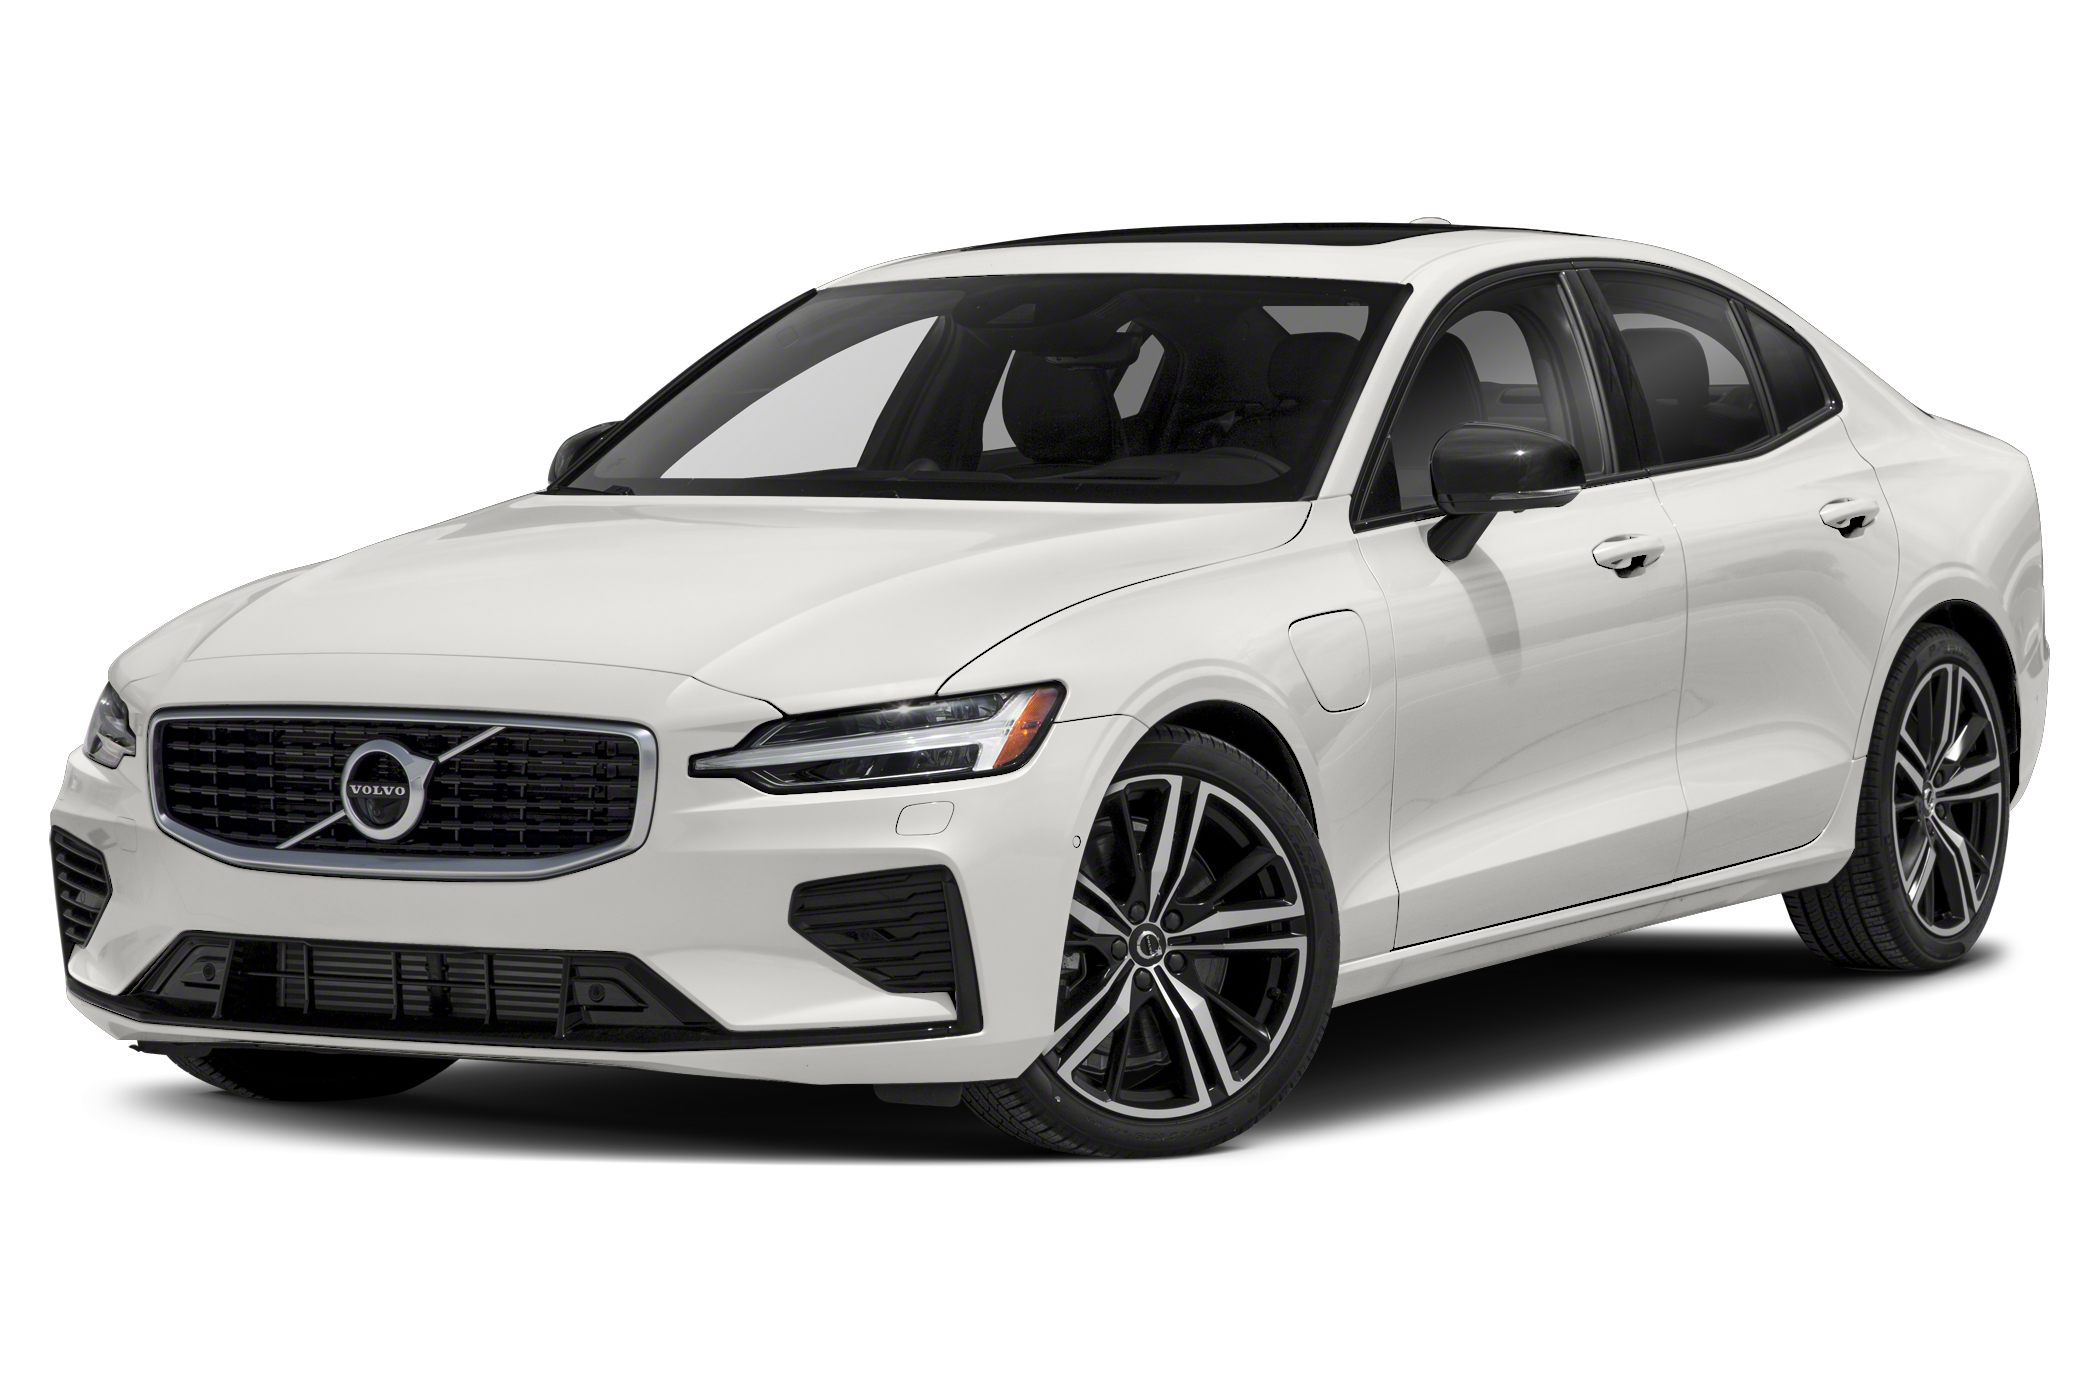 2020 Volvo S60 Hybrid T8 R Design 4dr All Wheel Drive Sedan Specs And Prices